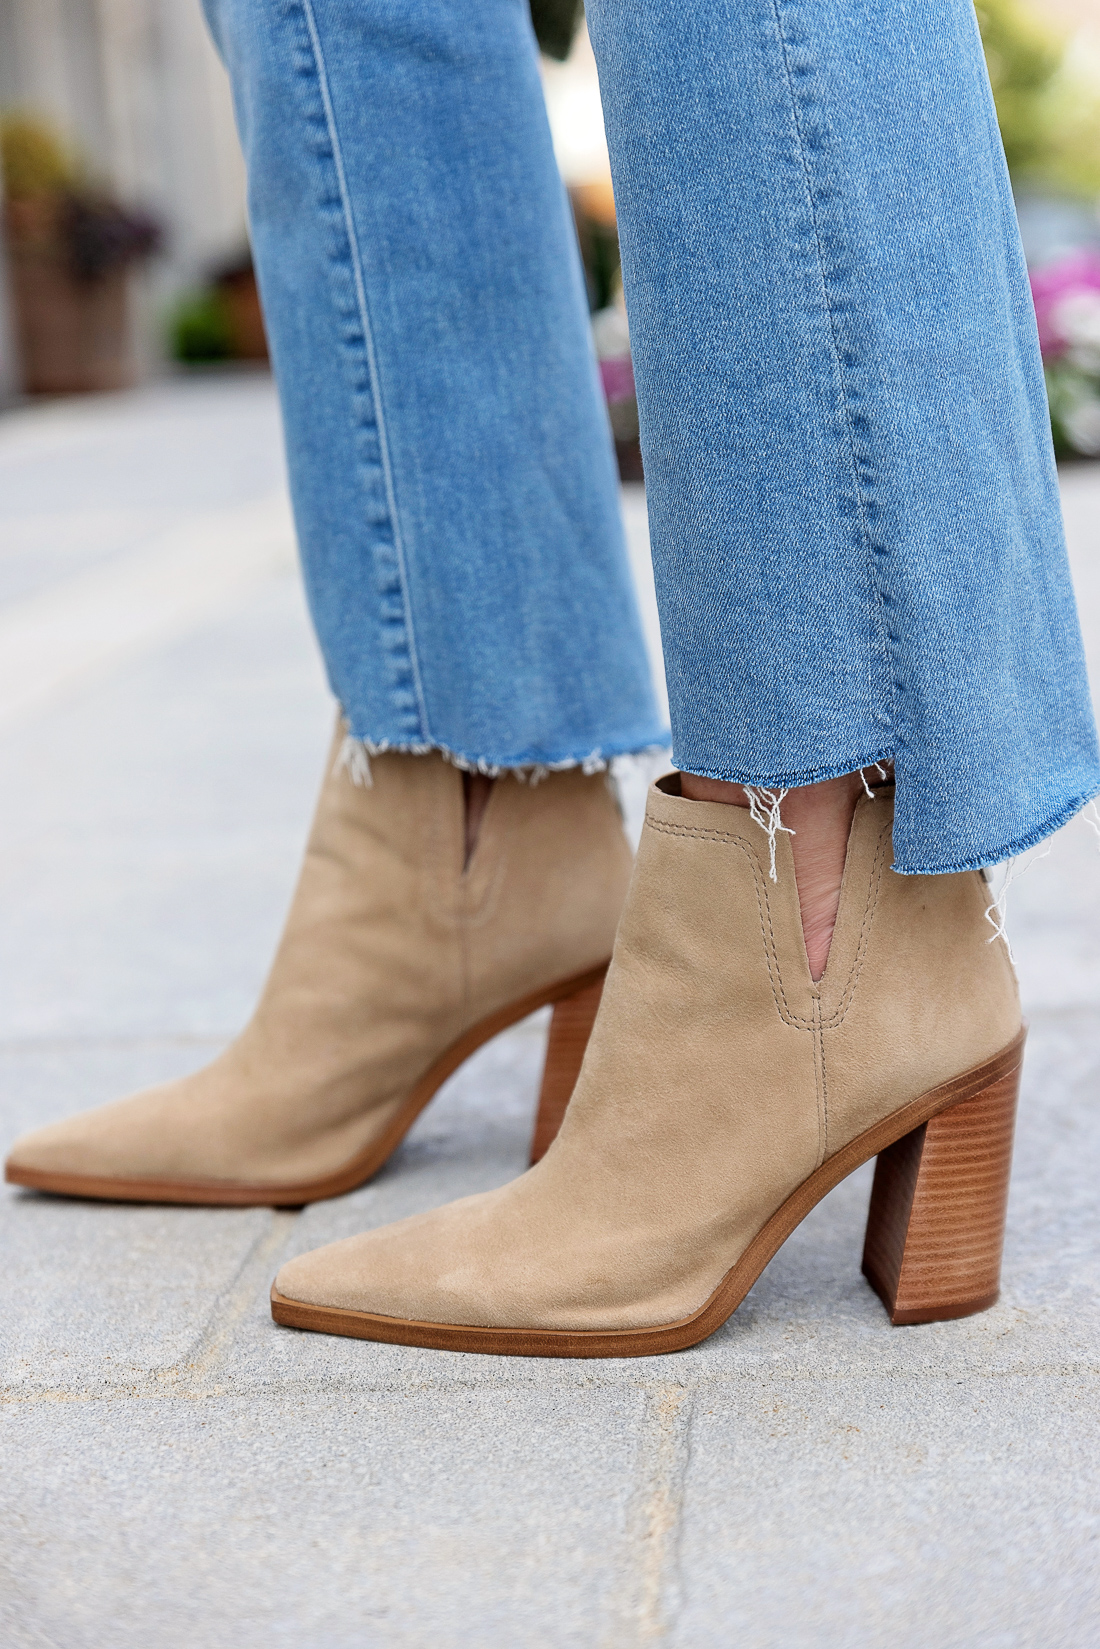 Mother Insider Crop Flare Jeans with Vince Camuto Welland Booties from Nordstrom Anniversary Sale 2021